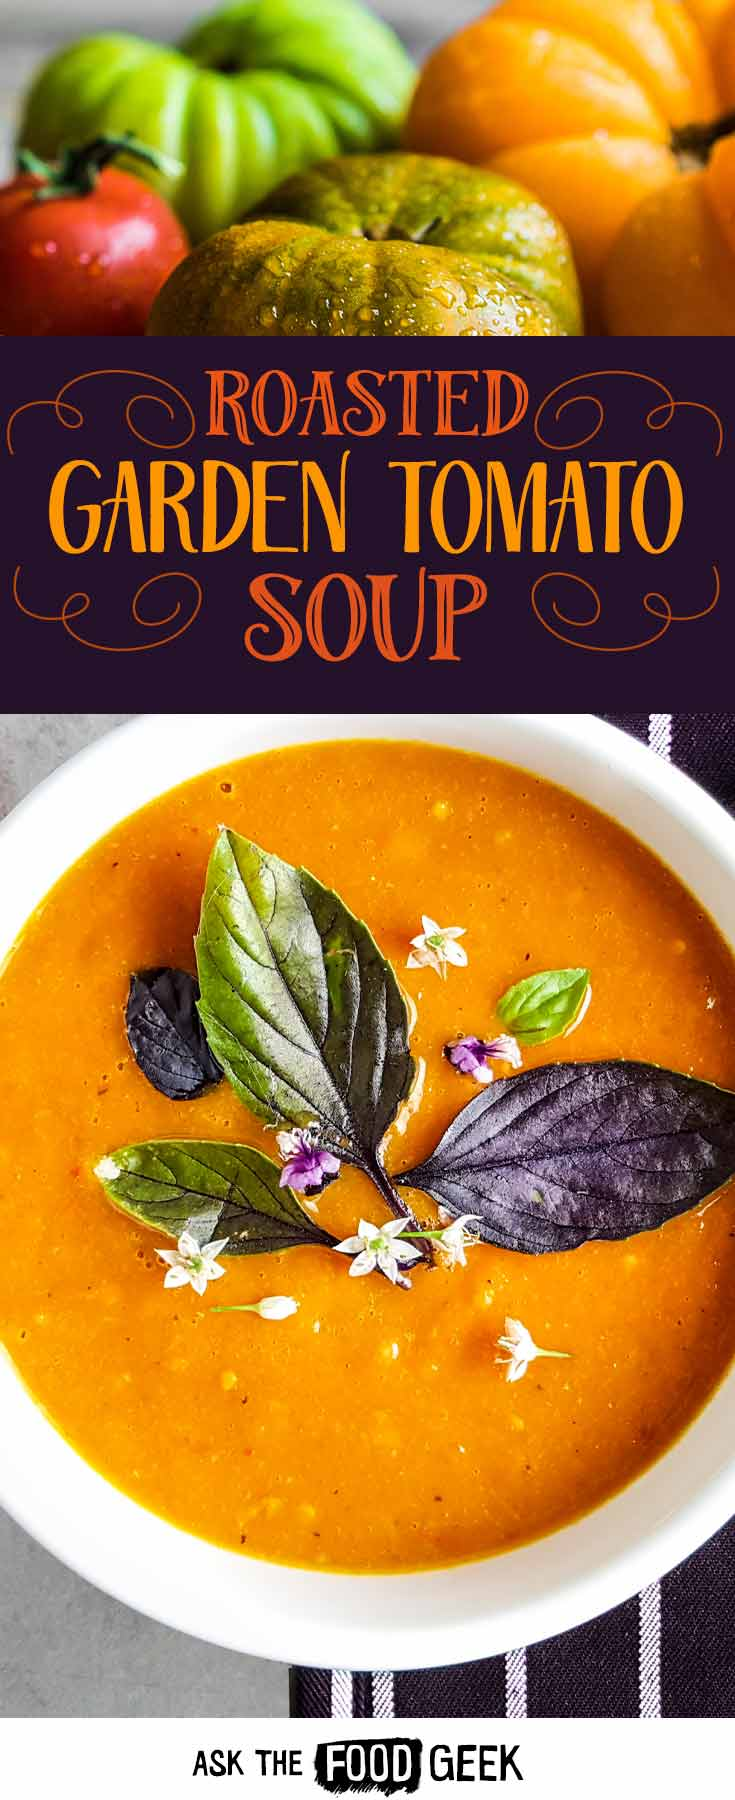 Tomato soup recipe with garden fresh roasted tomatoes and bell peppers. Make it in summer and freeze it until fall.